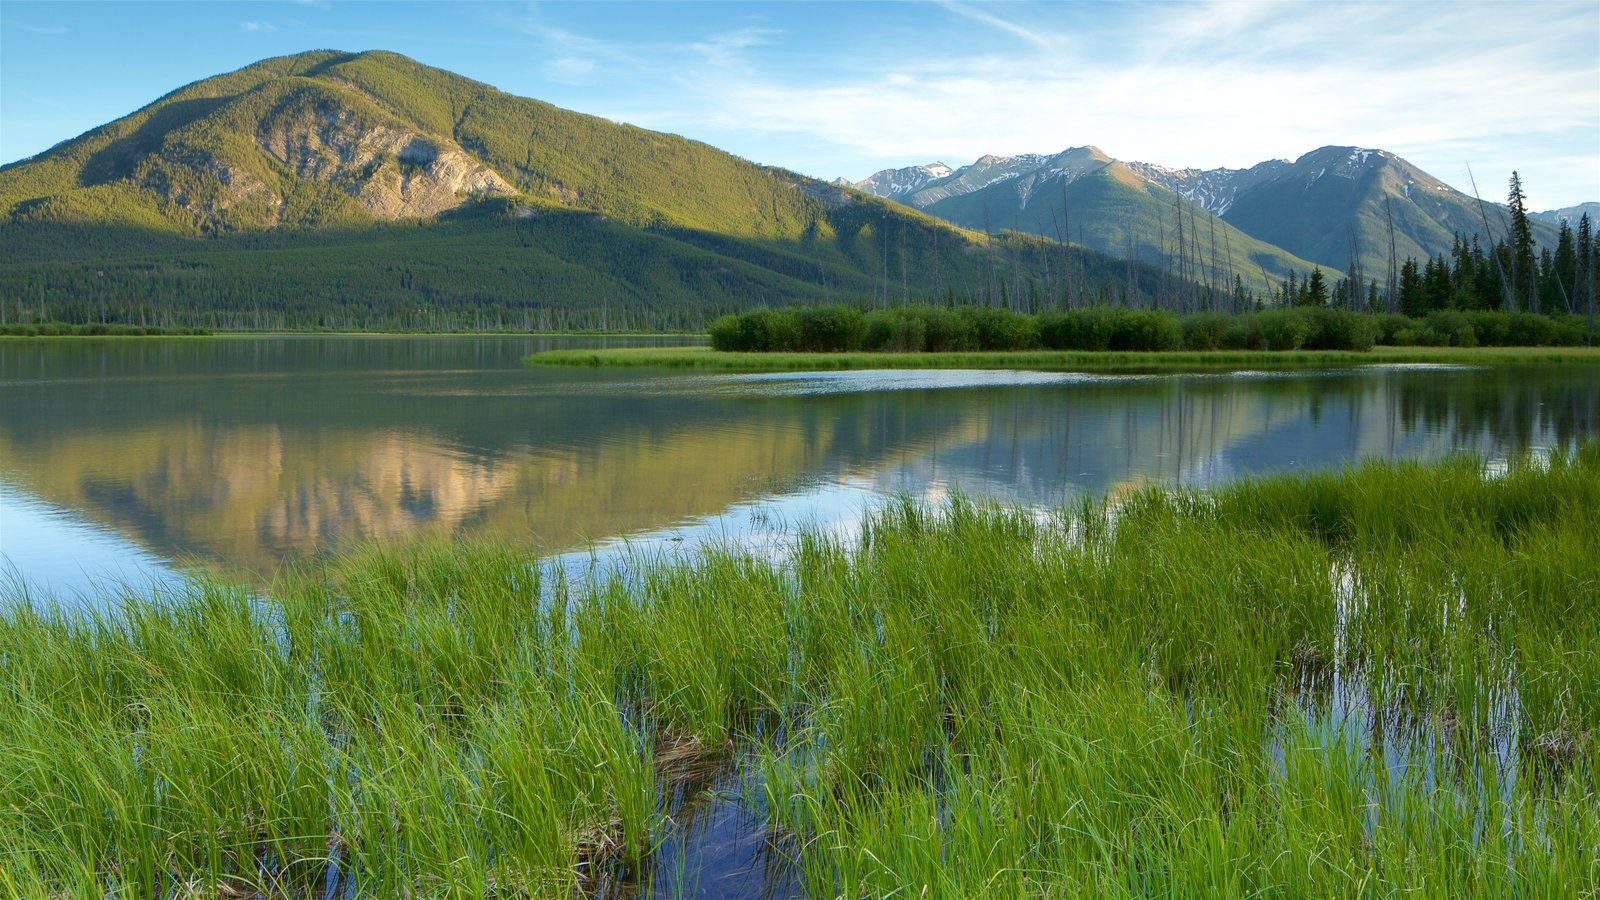 Banff featuring mountains, tranquil scenes and wetlands